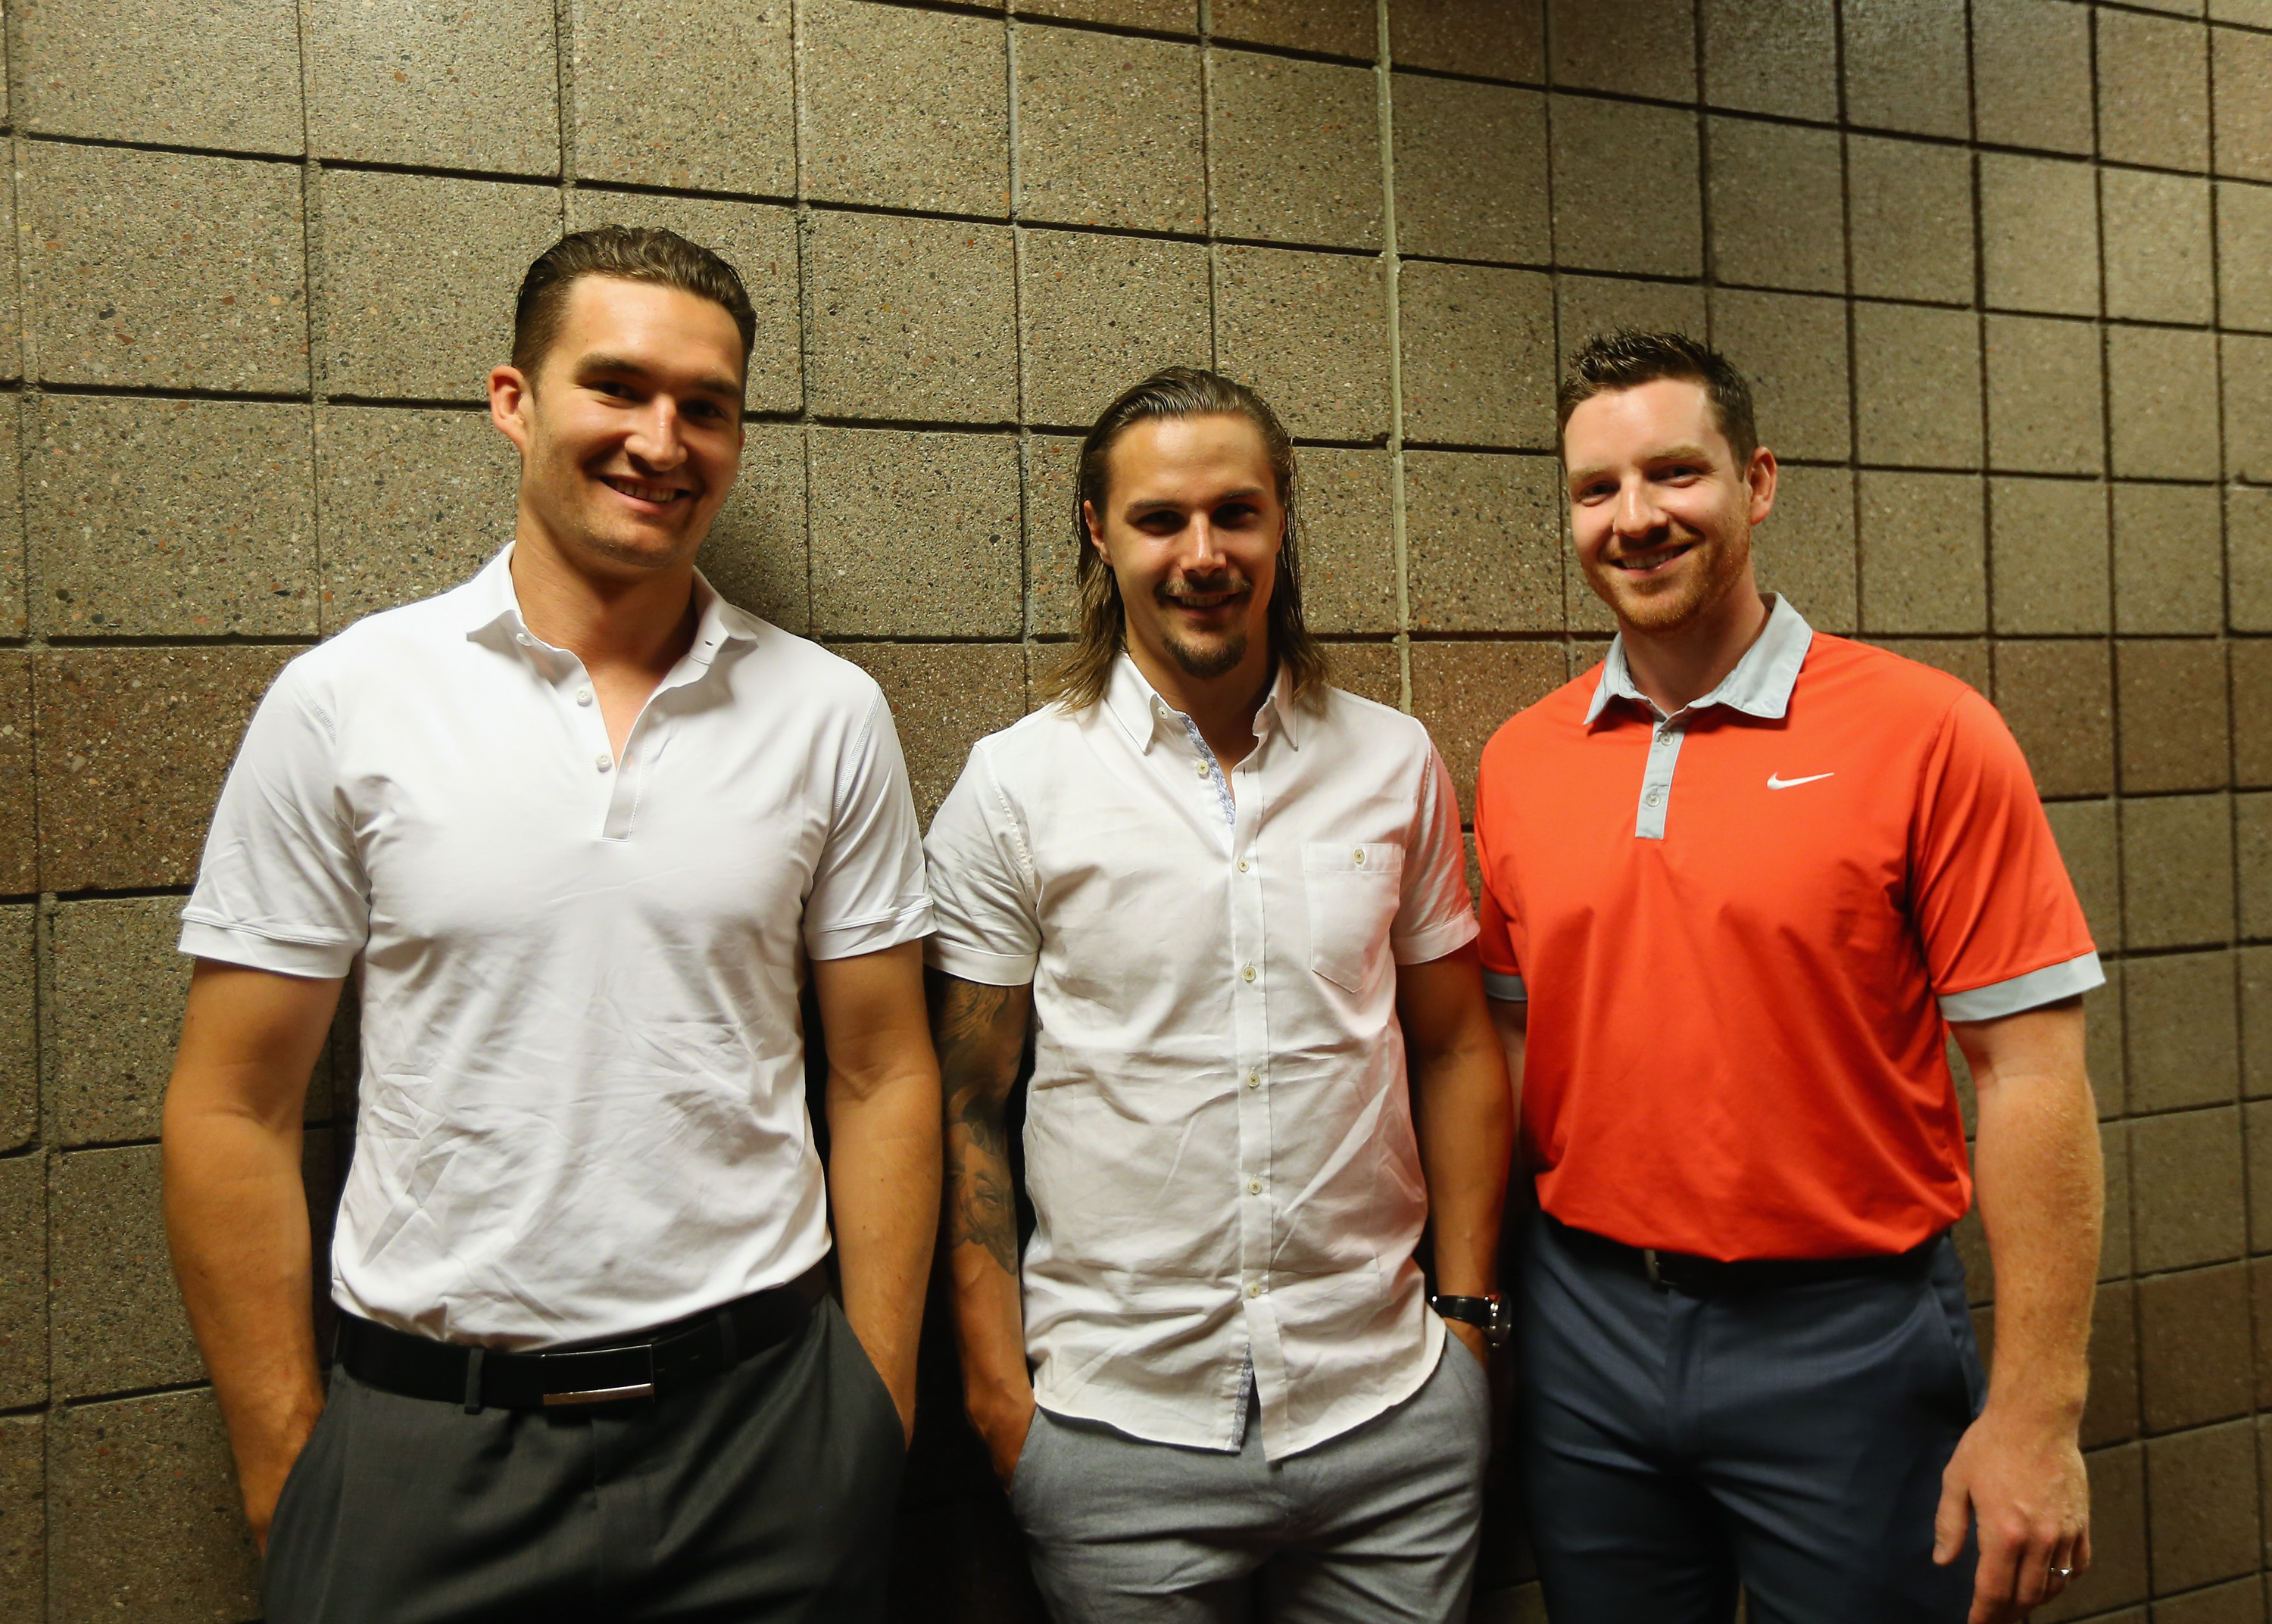 Wonder if these three have been practising their 3-on-3 tactics?